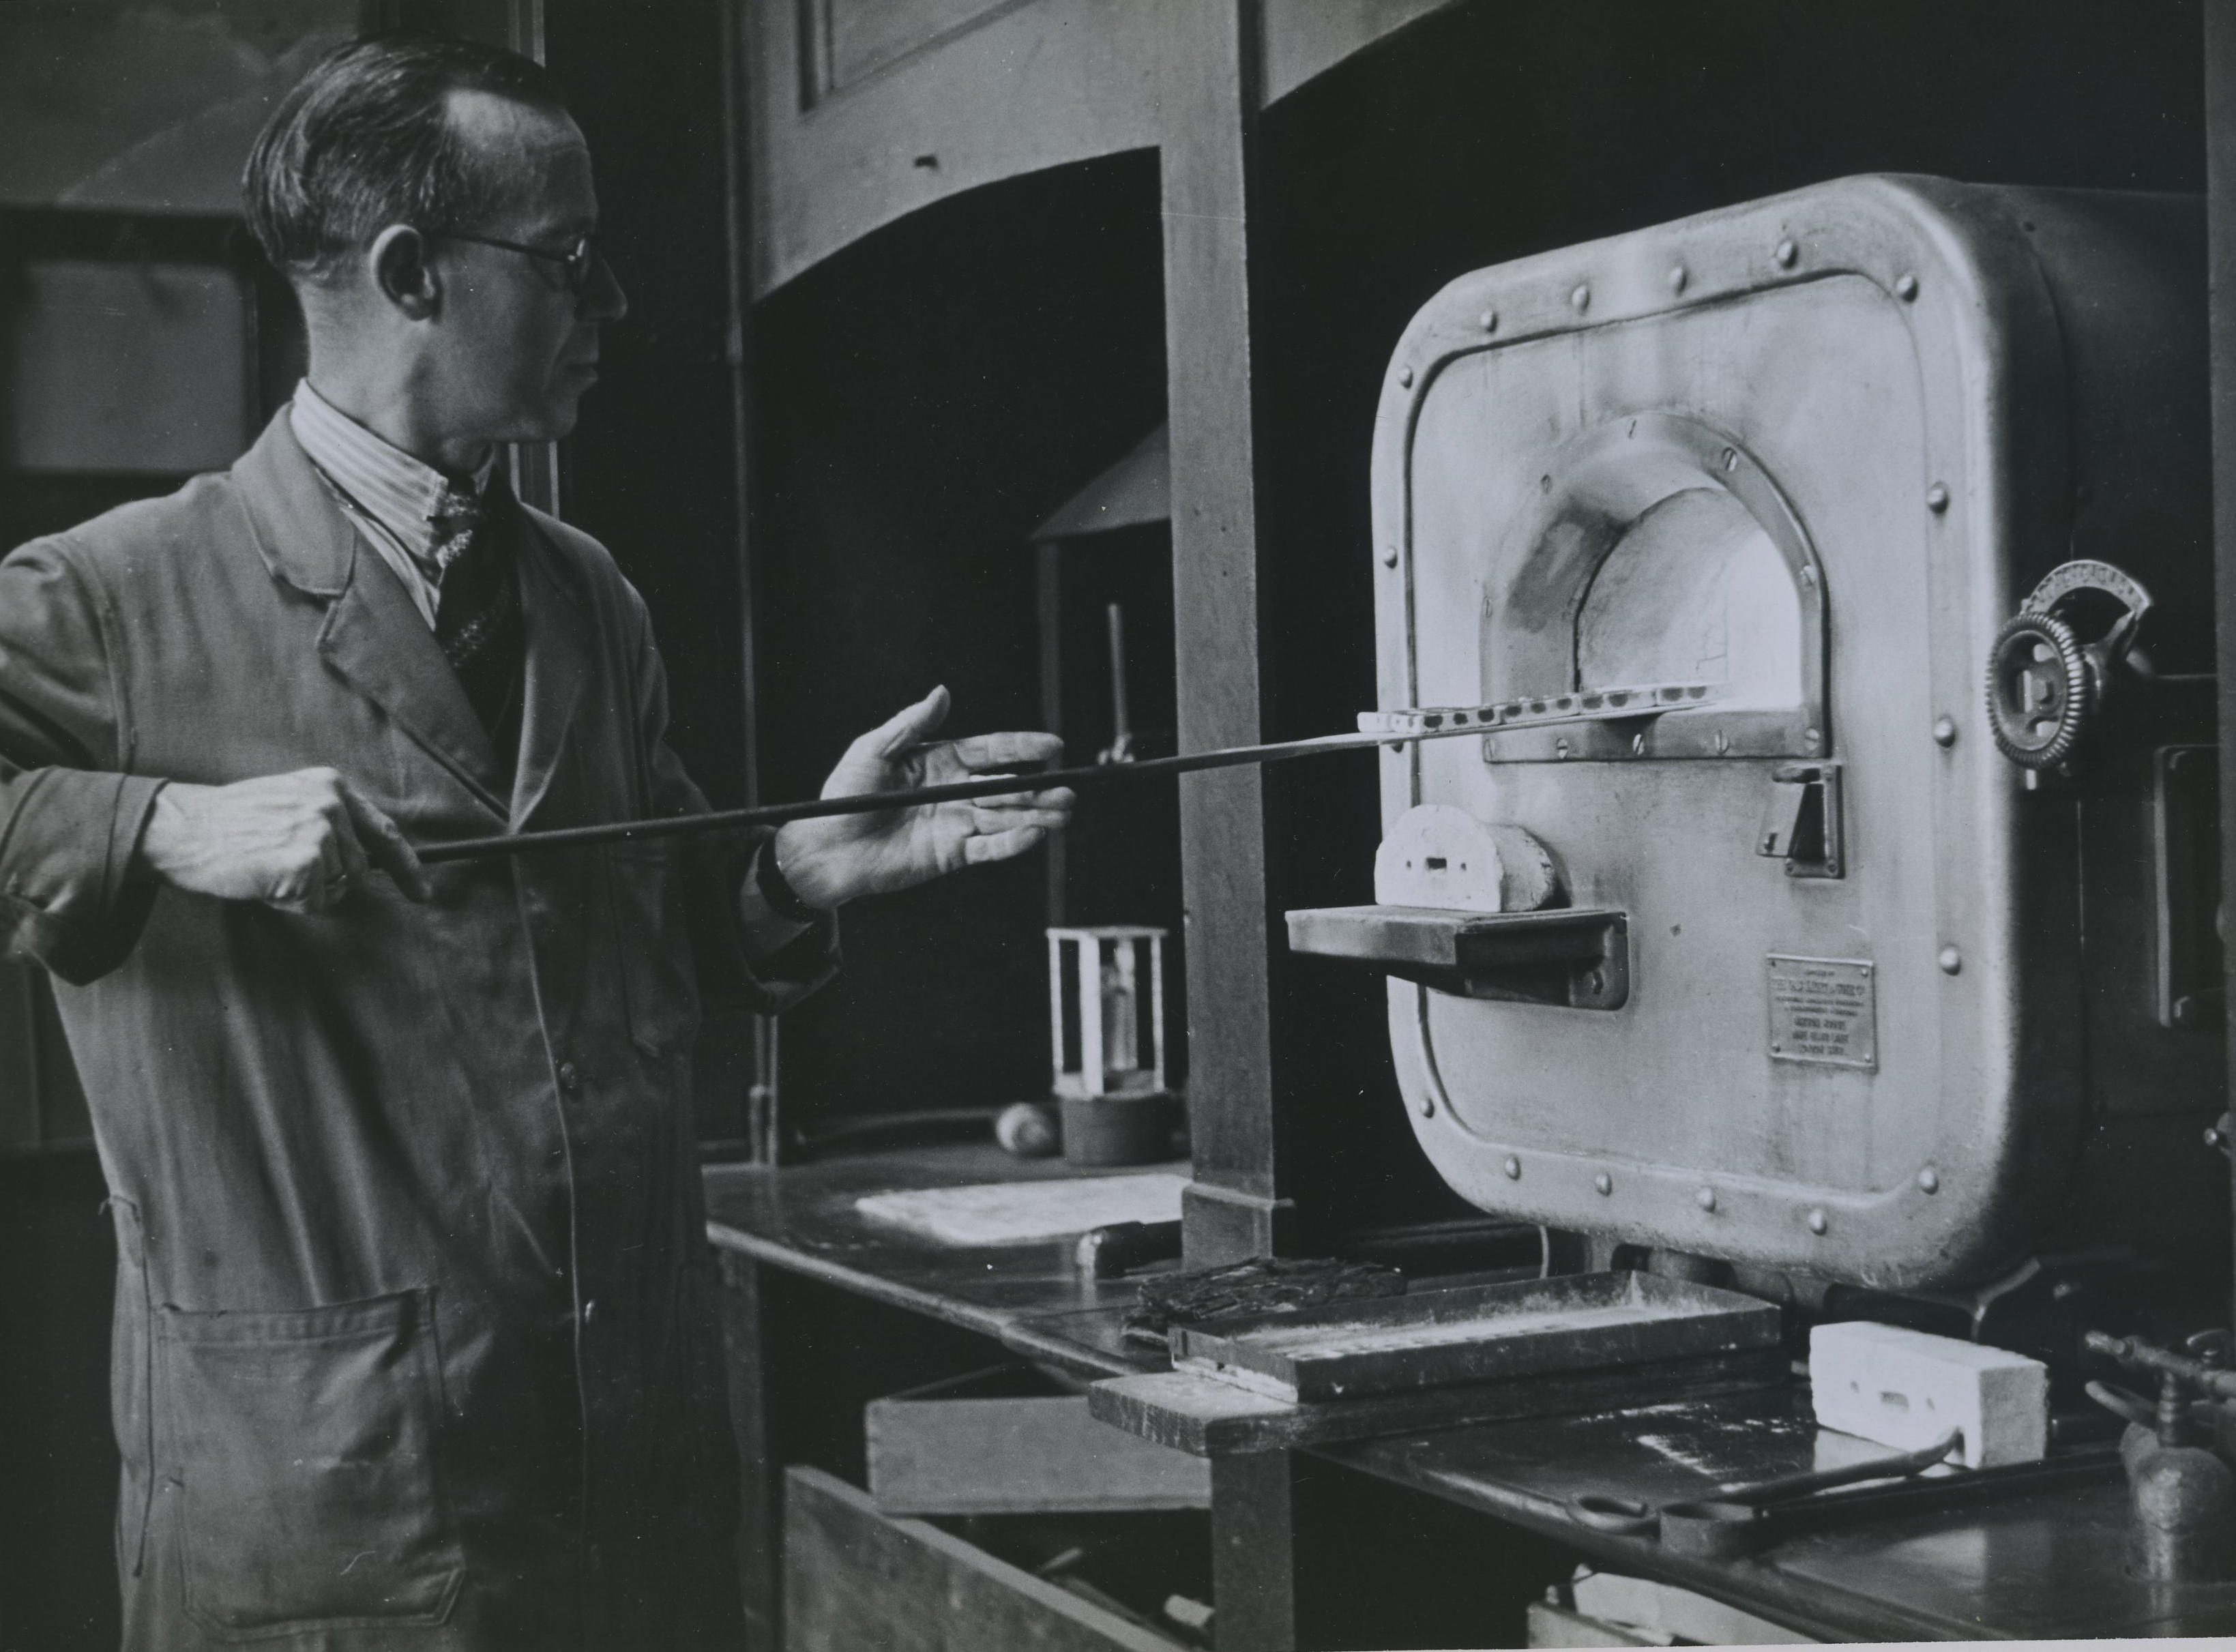 Laboratory - cupels being placed inside the furnace circa 1960